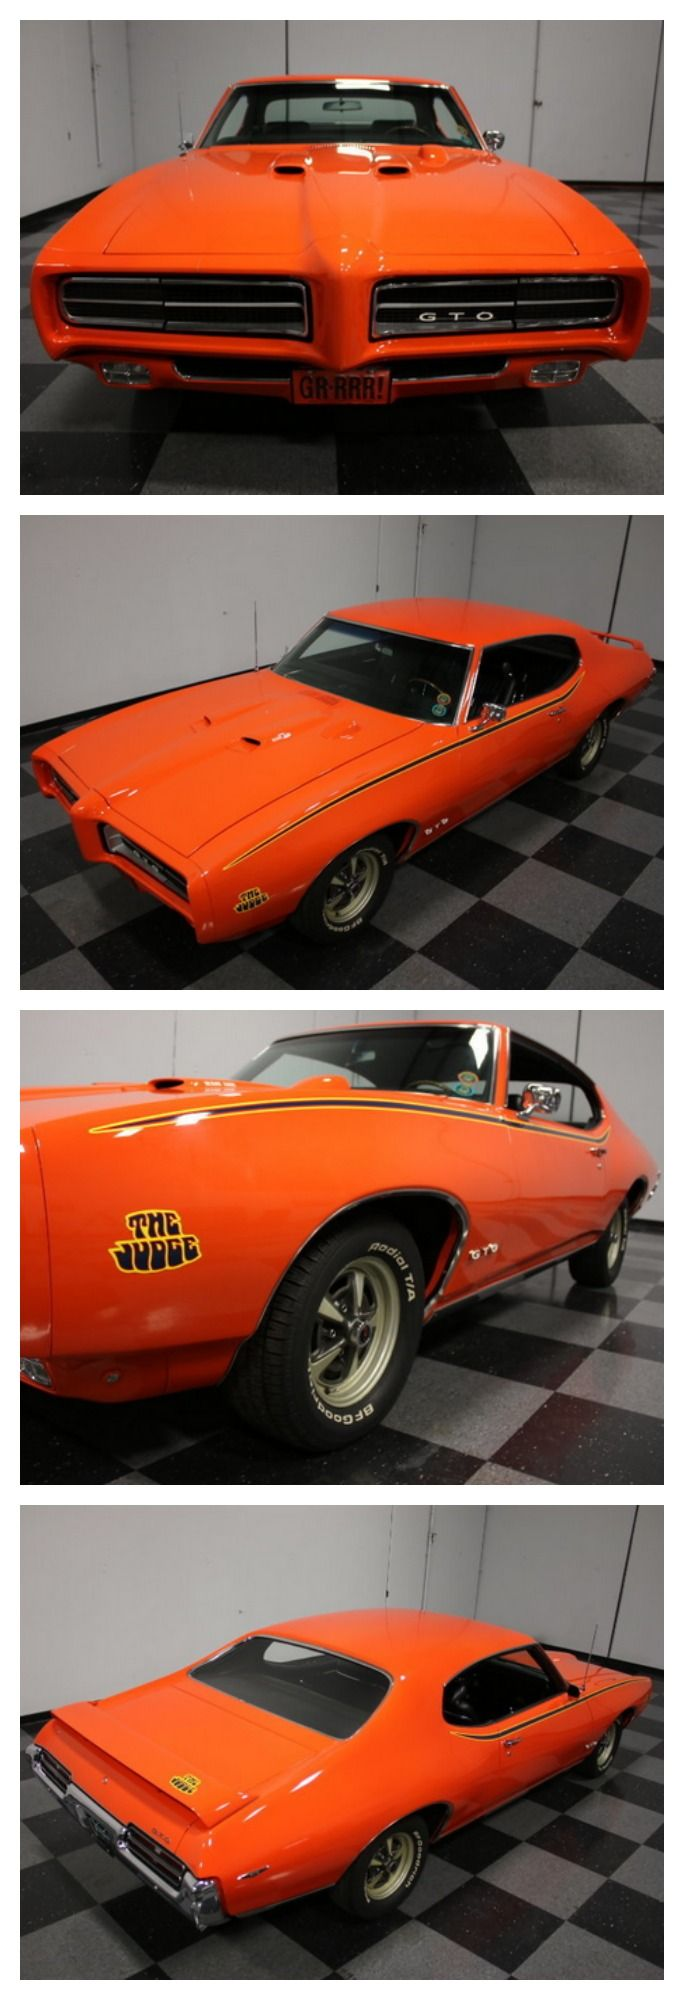 72 Gto Judge For Sale - Vintage Parts For Cars